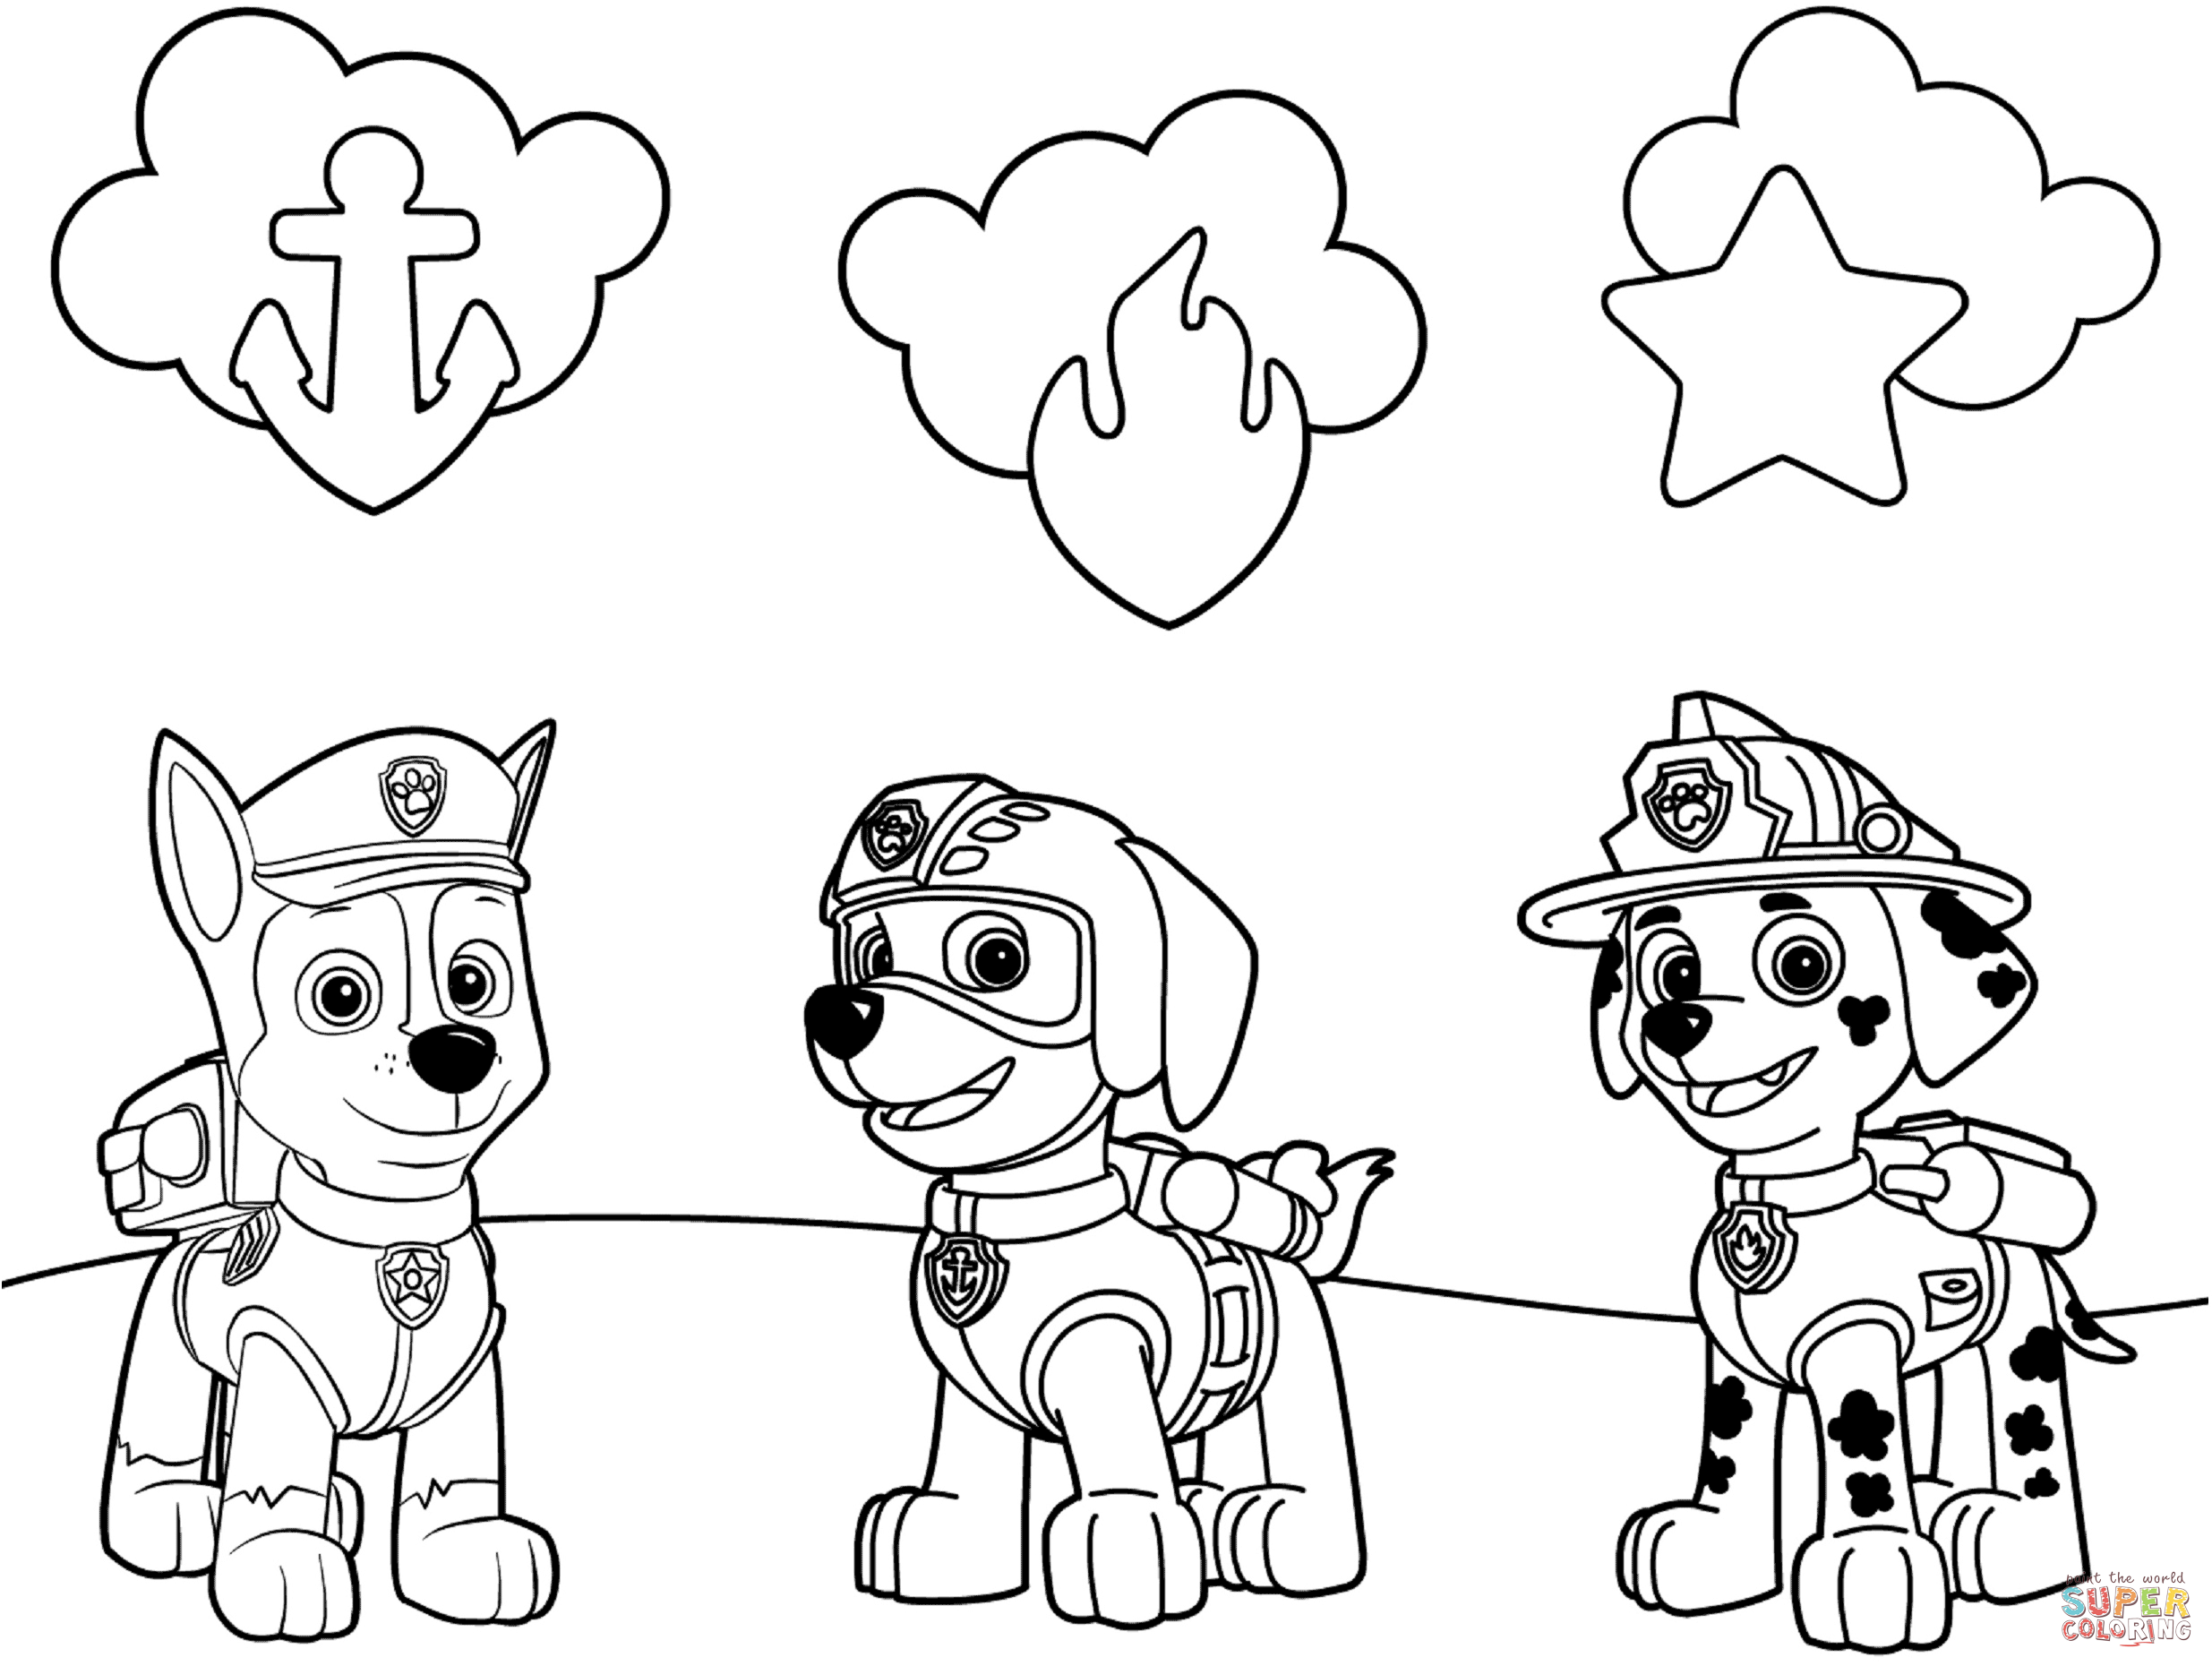 PAW Patrol Badge Coloring Pages Printable 26 - Print Color ...